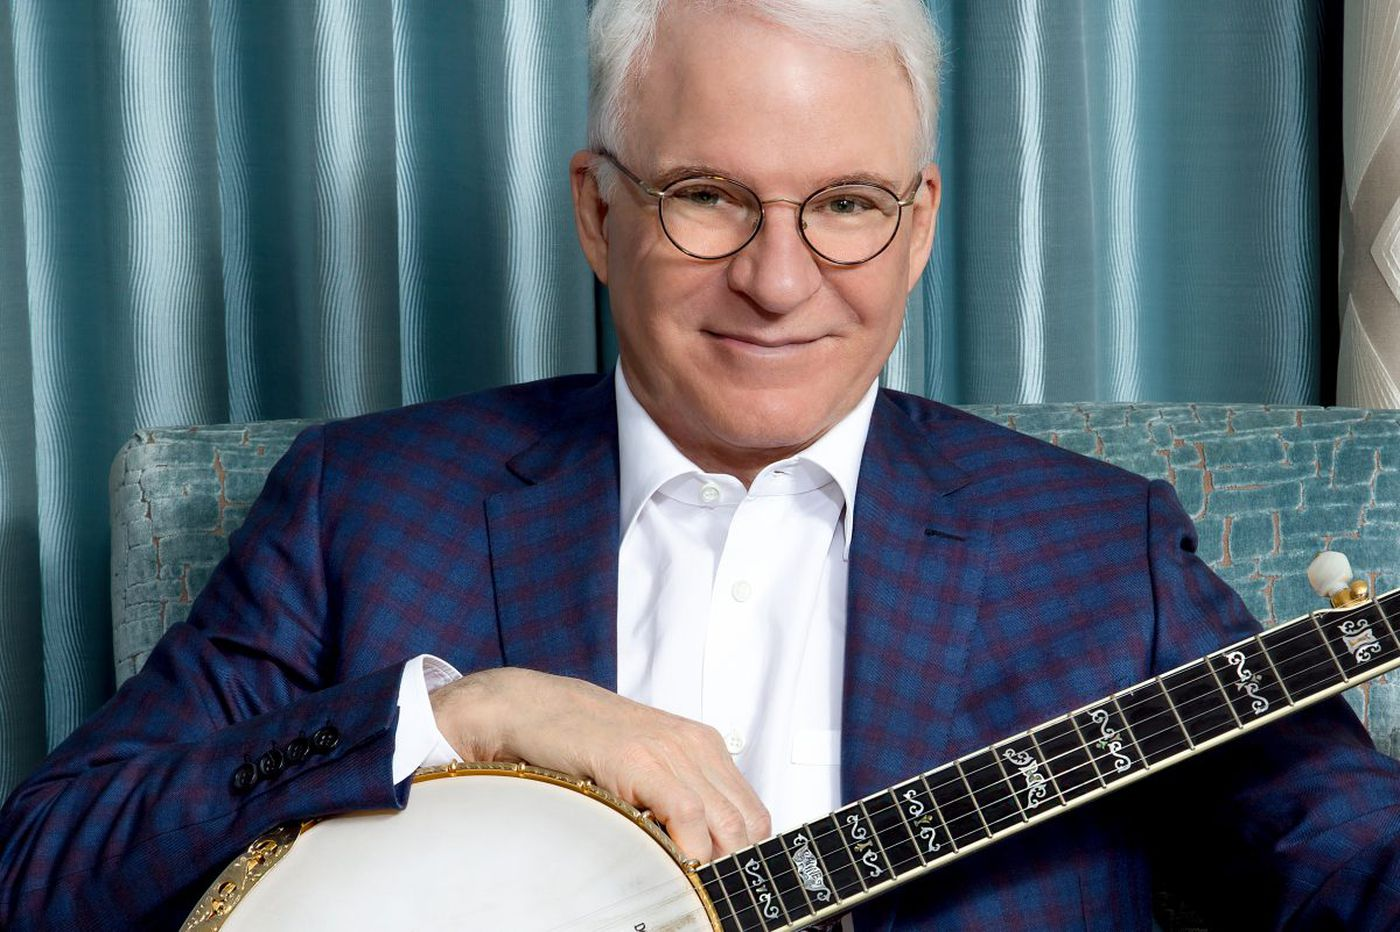 Steve Martin is guest for Academy of Music Anniversary Concert - with banjo